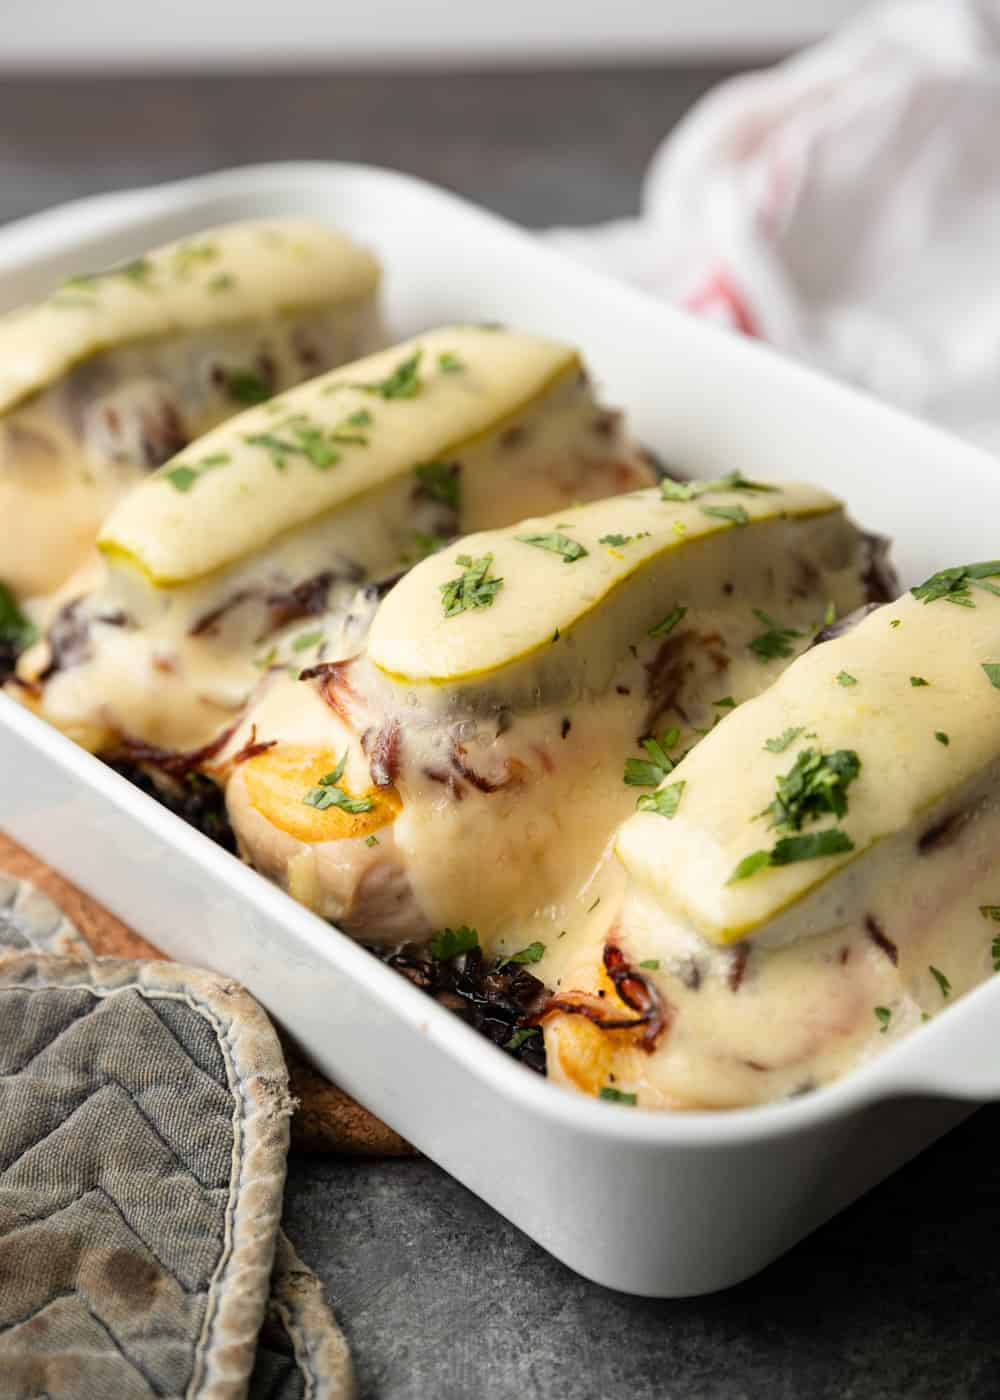 melted cheese over oven baked sandwiches